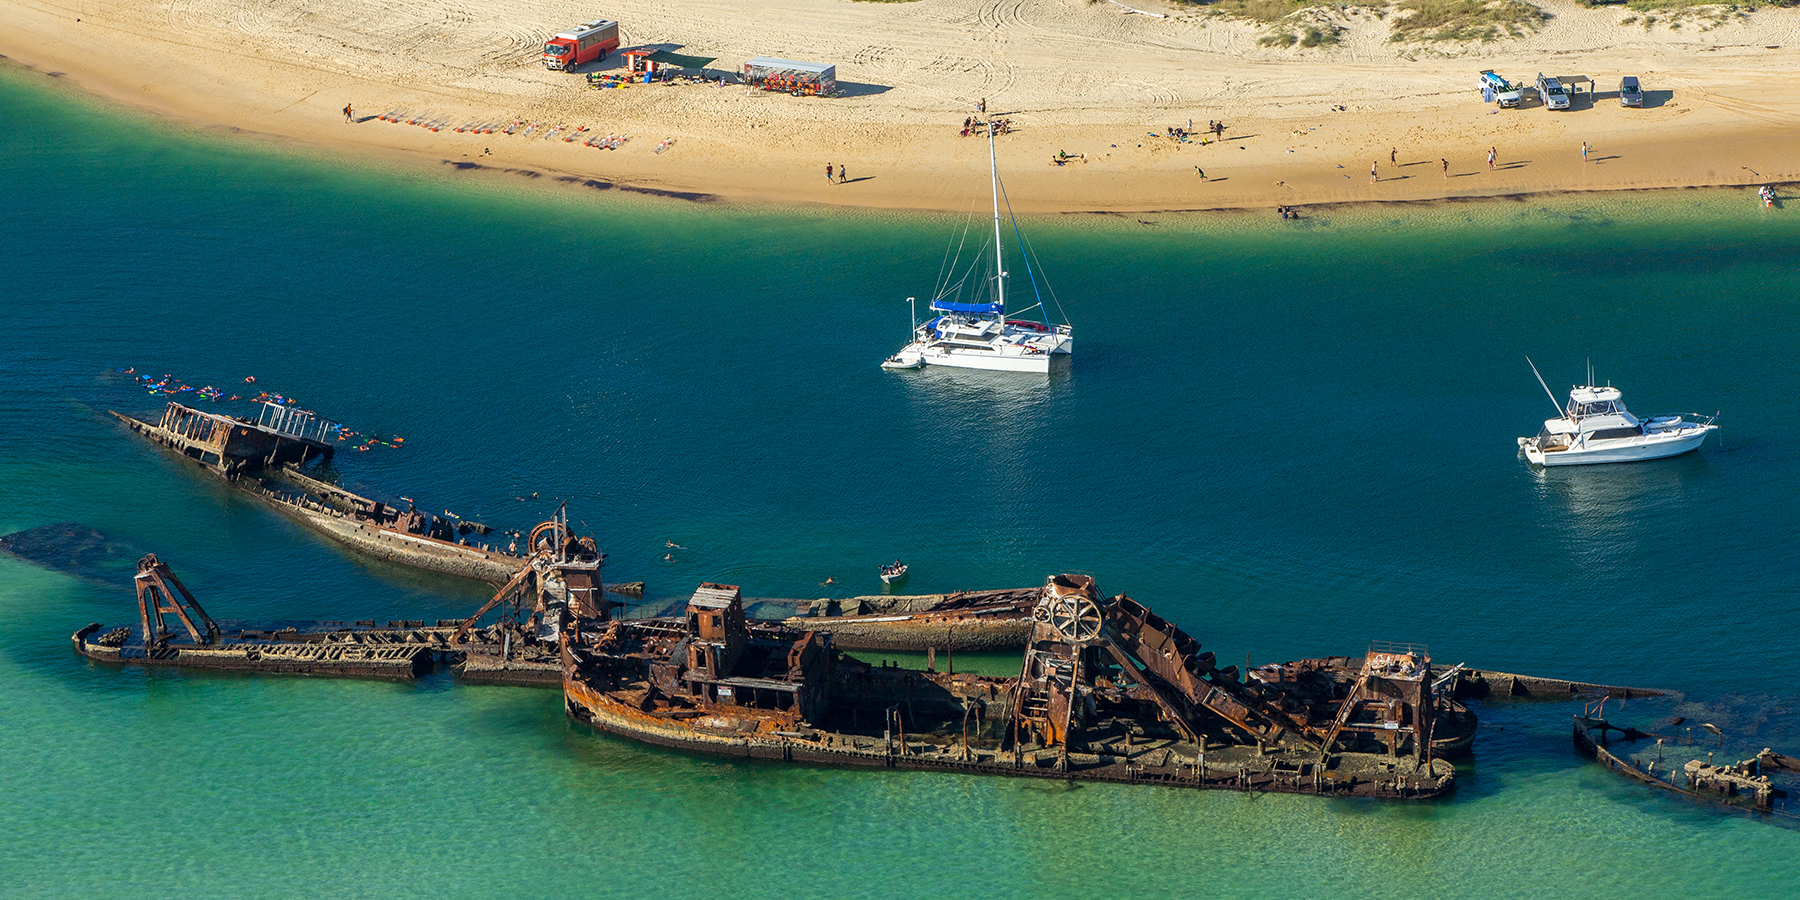 aerial image tangalooma wreck